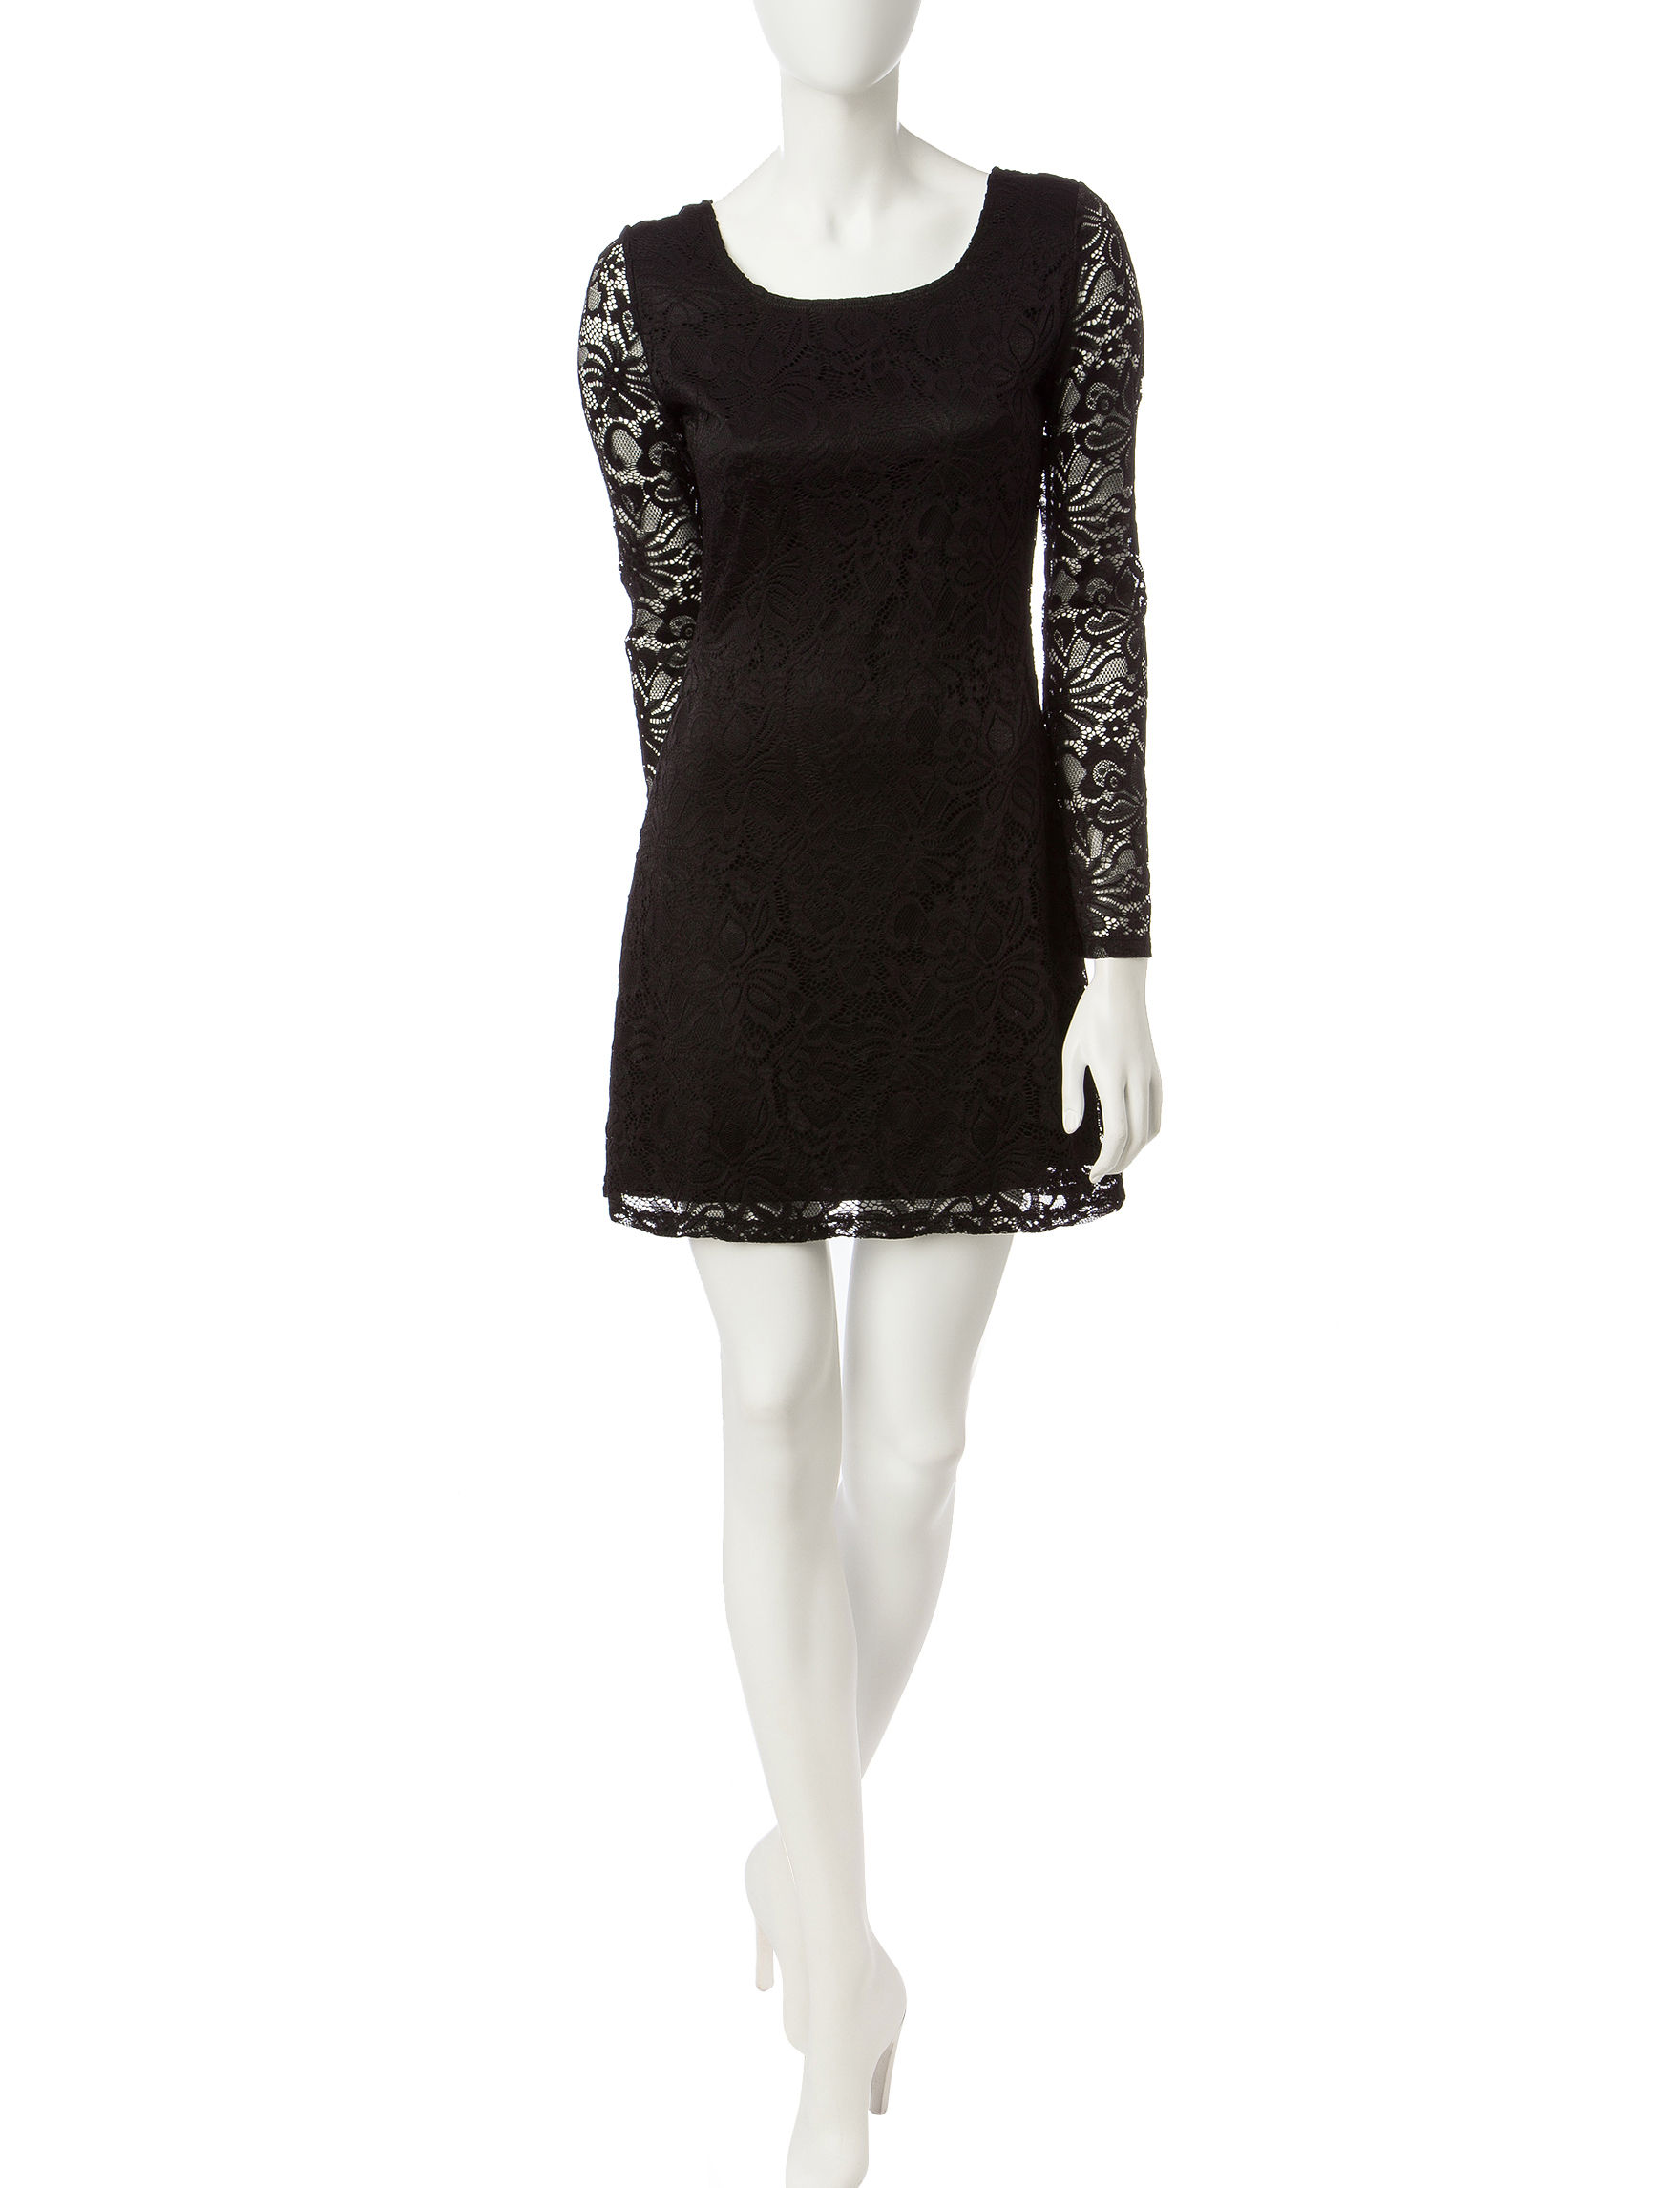 Liberty love black cocktail amp party fit amp flare dresses